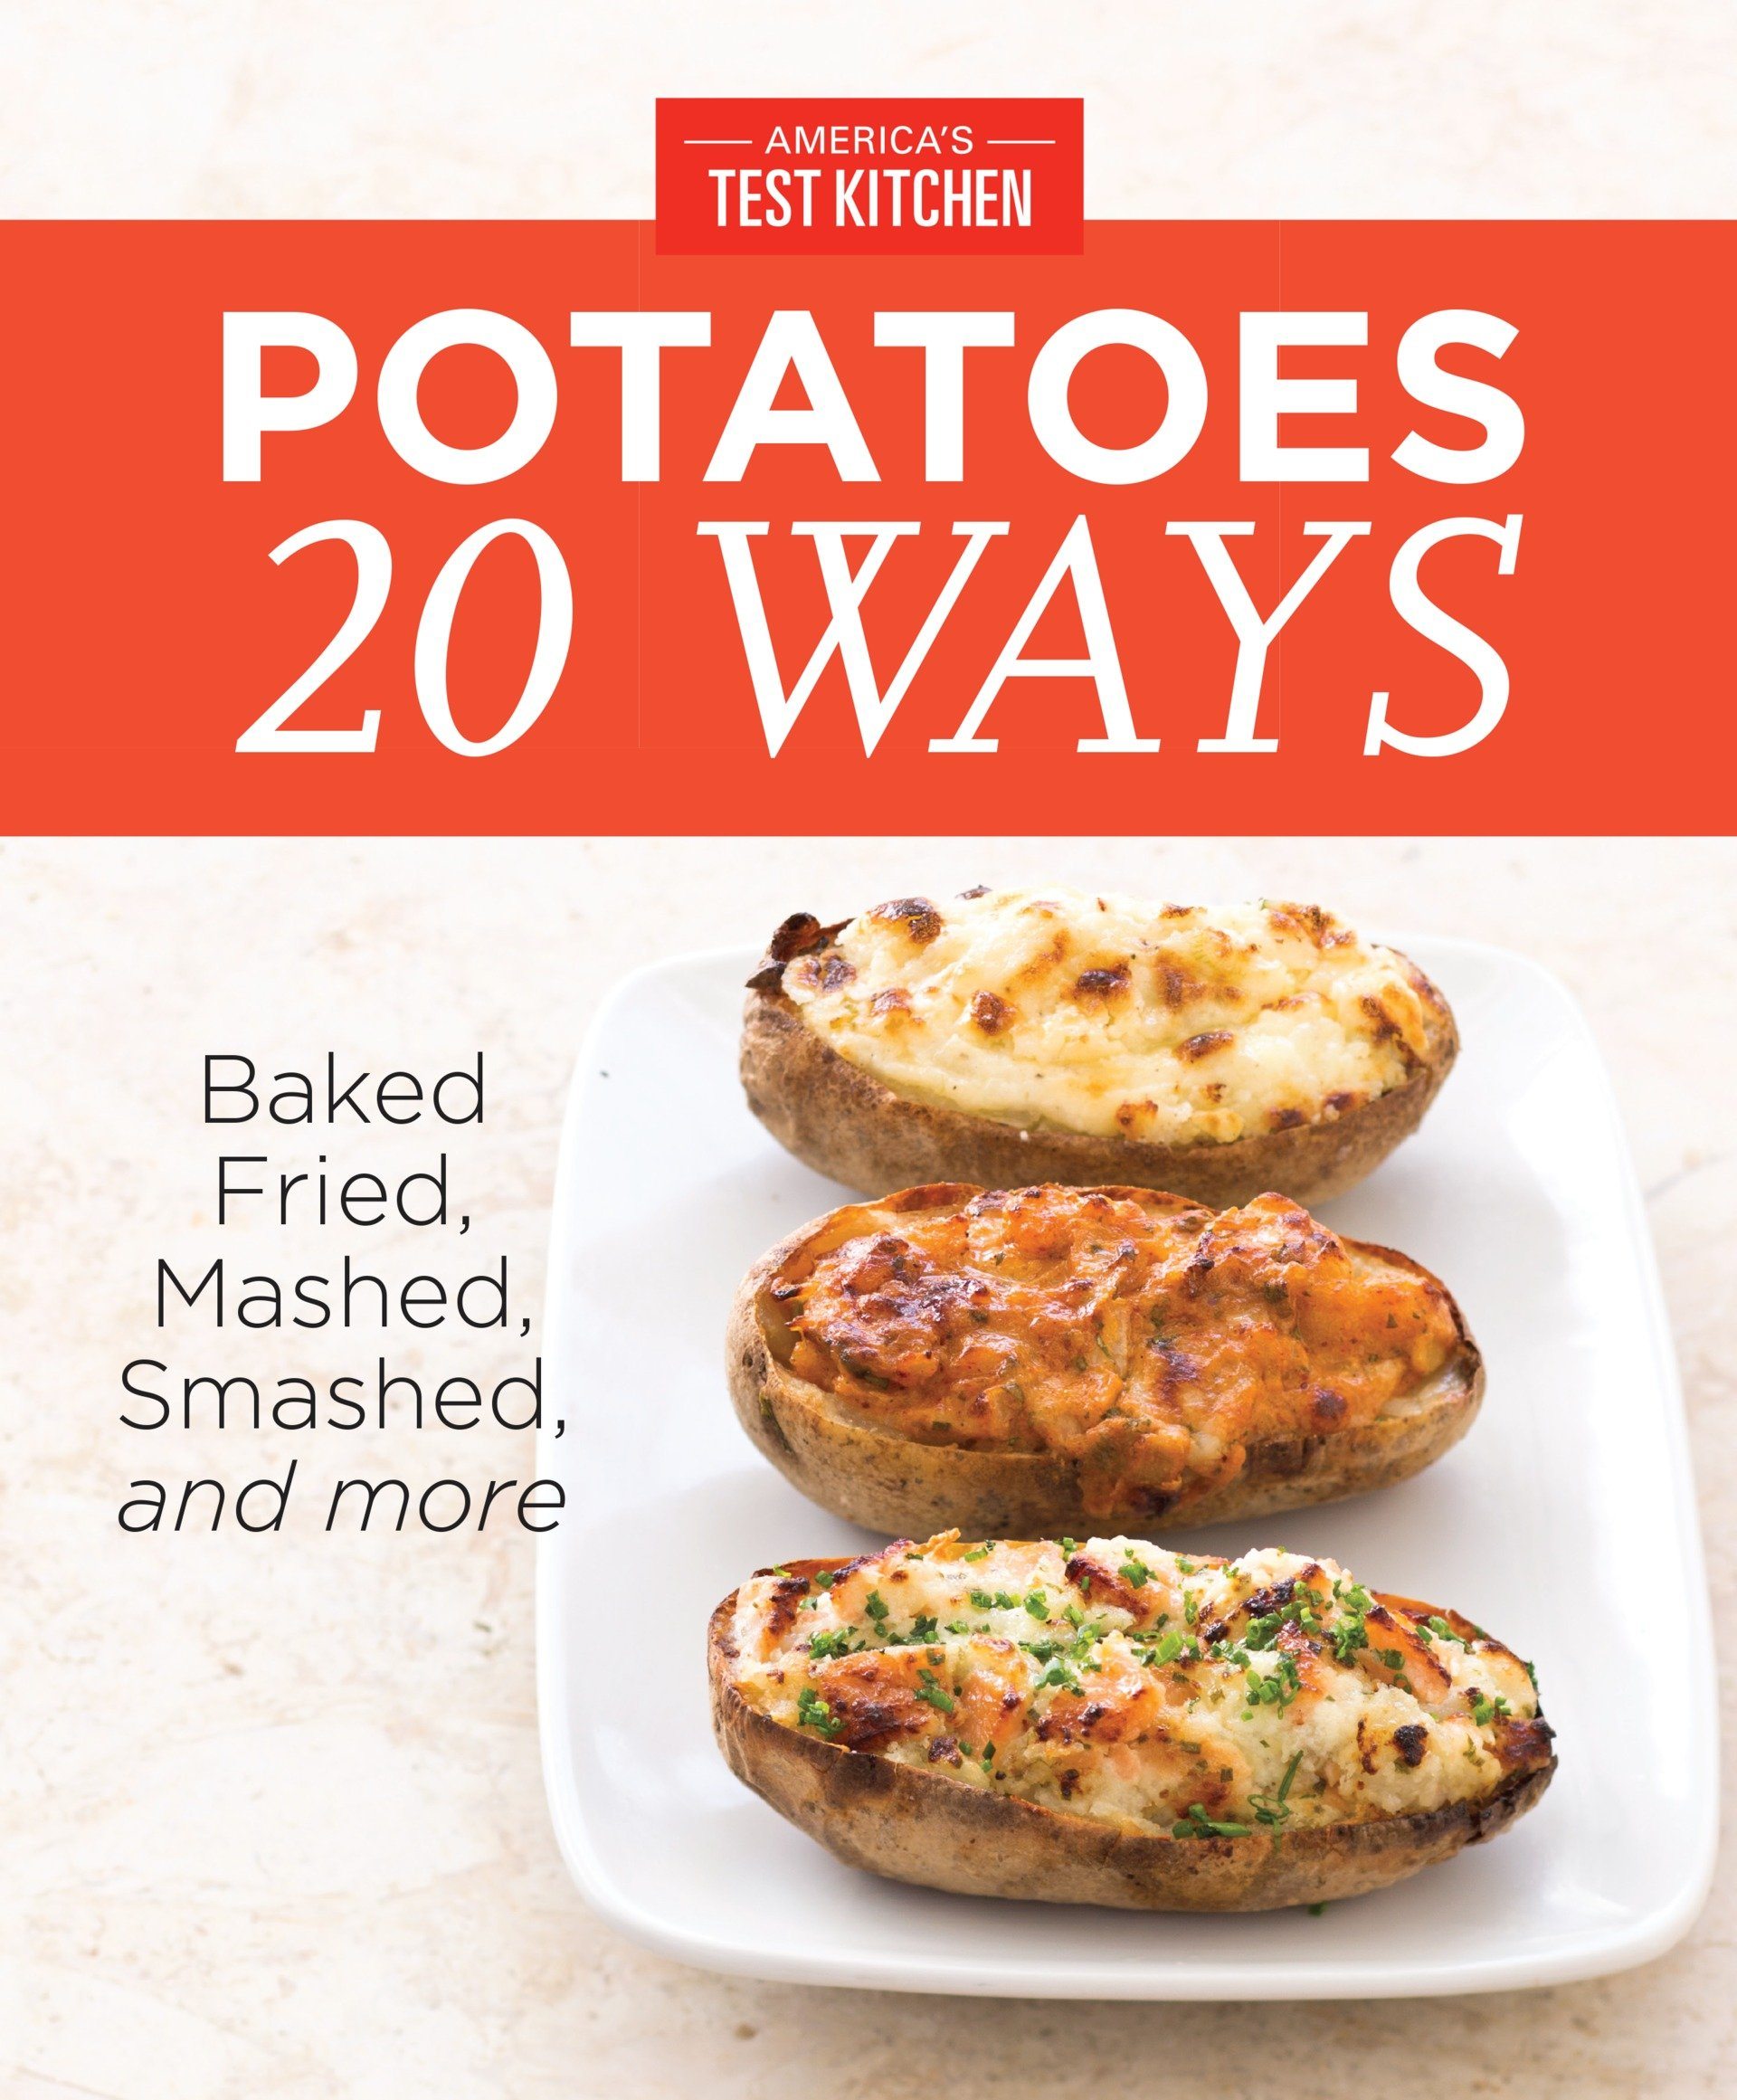 America's Test Kitchen's Potatoes 20 Ways Baked, Fried, Mashed, Smashed,and more